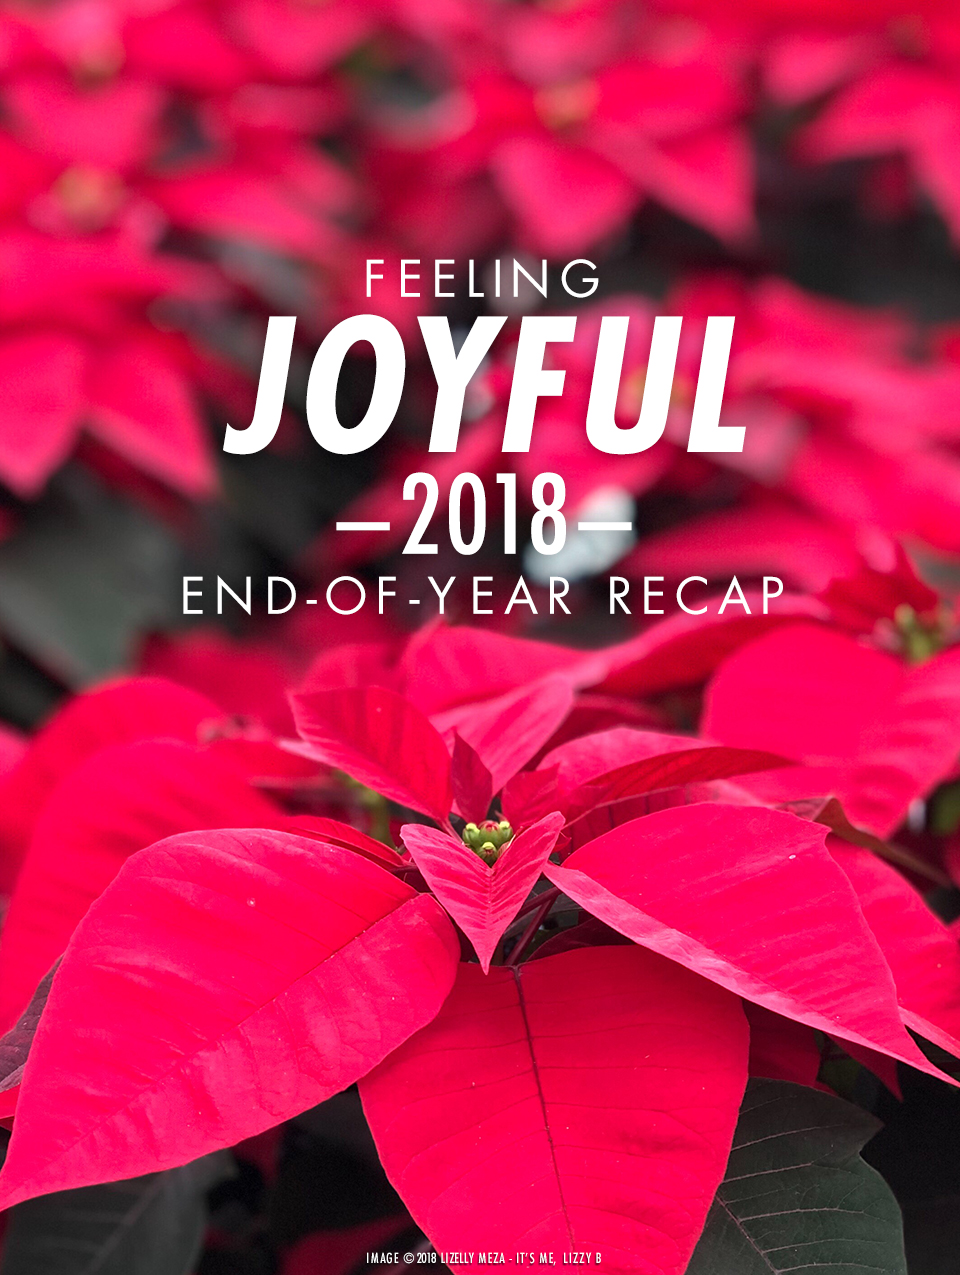 Feeling Joyful—2018 End of Year Recap // It's Me, Lizzy B - Musings on Life, Business, & The Pursuit of Curiosity // Personal blog of Lizelly Meza